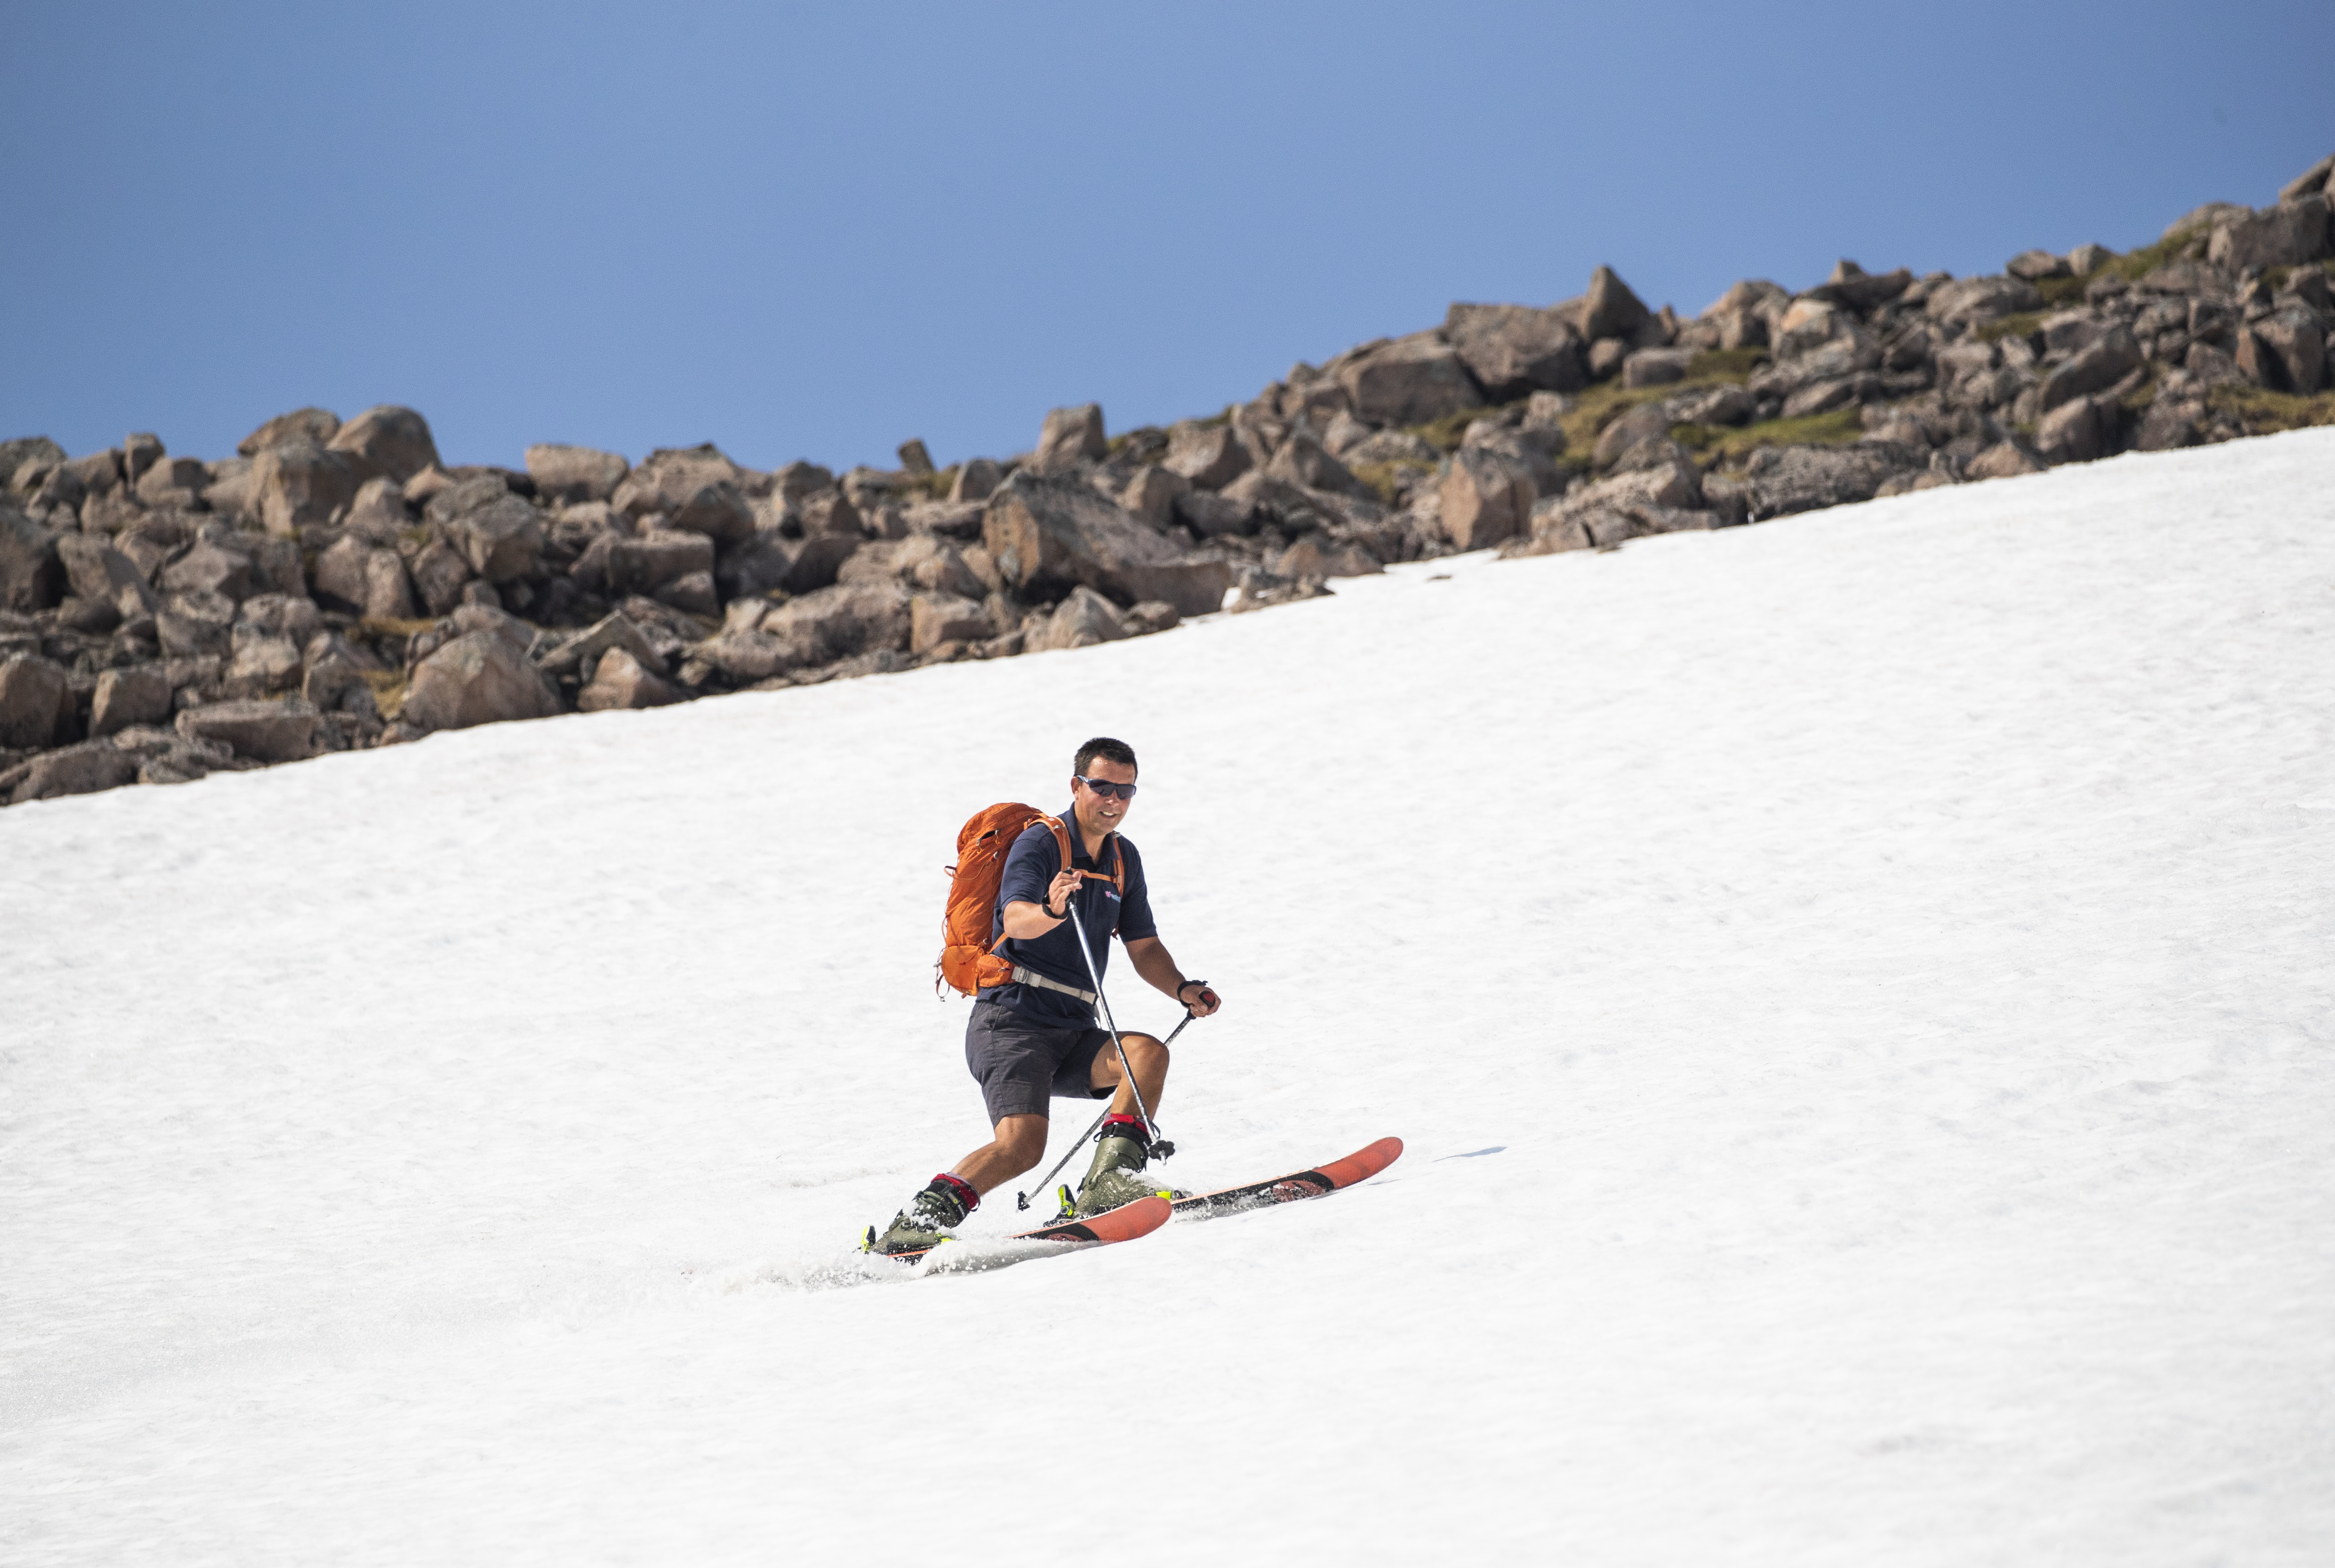 Andy Meldrum, owner of the Glencoe Mountain Resort, skis on some of the remaining snow patches on the slopes of Meall a'Bhuiridh in Glencoe as Thursday could be the UK's hottest day of the year with scorching temperatures forecast to rise even further.